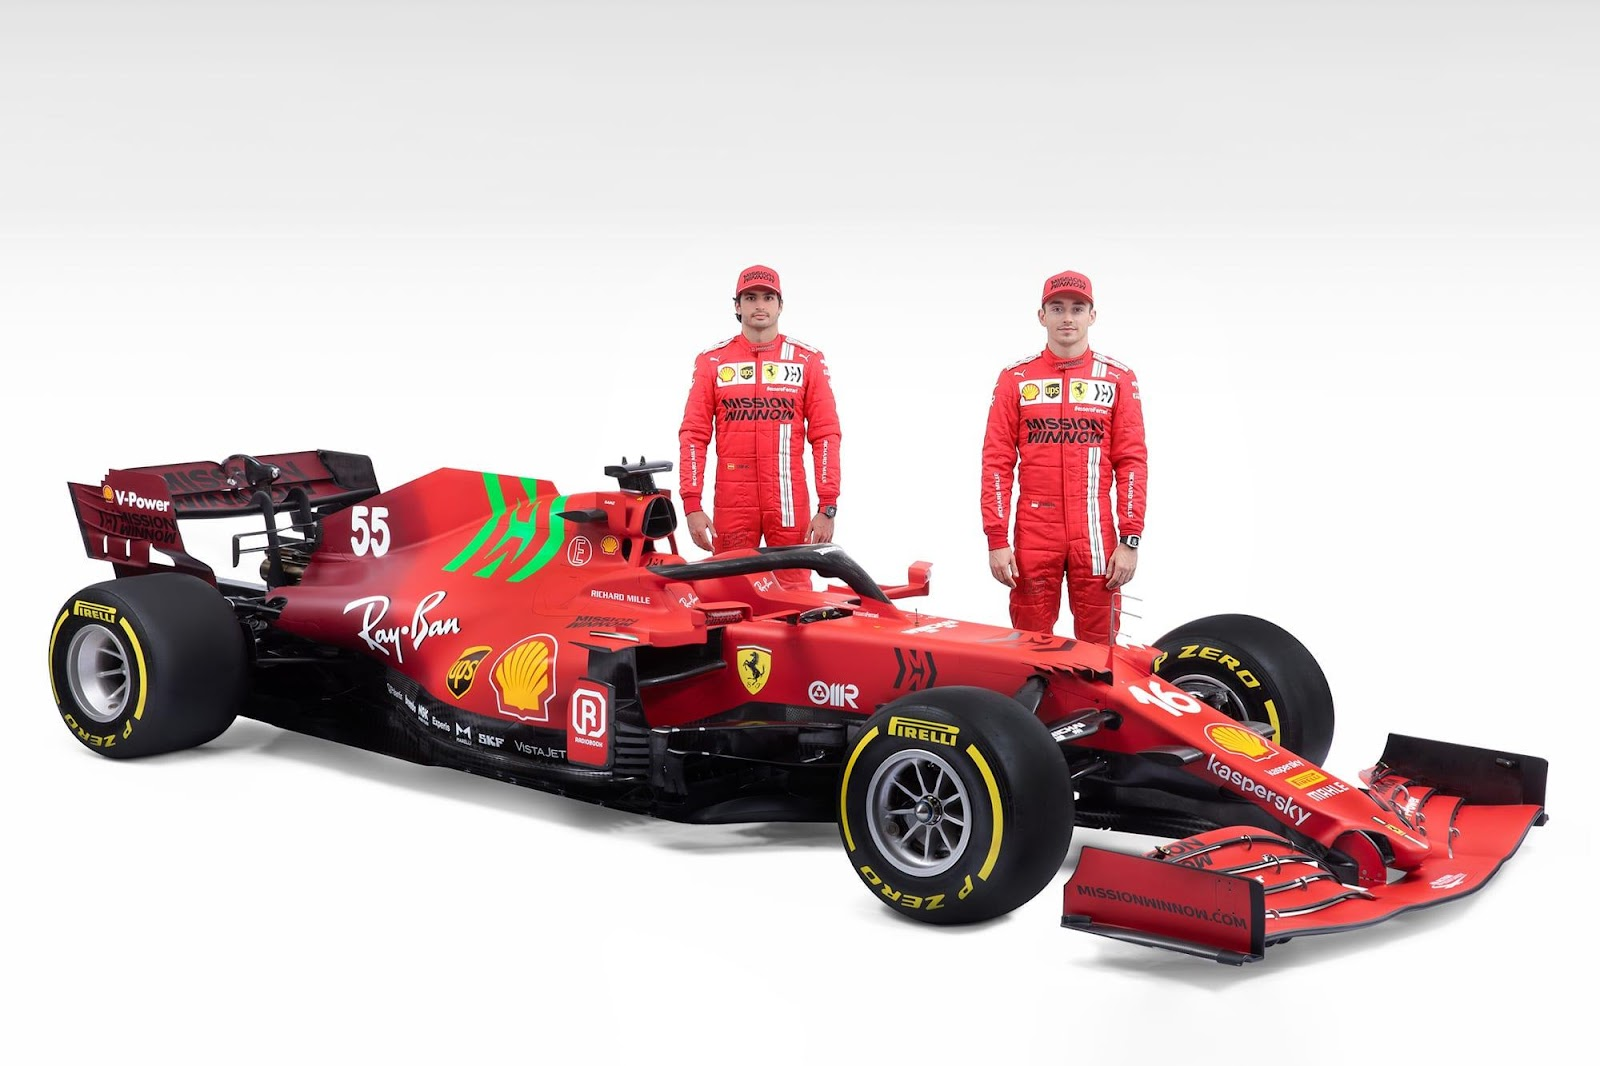 Ferrari launches 2021 F1 car with revised livery - The Race